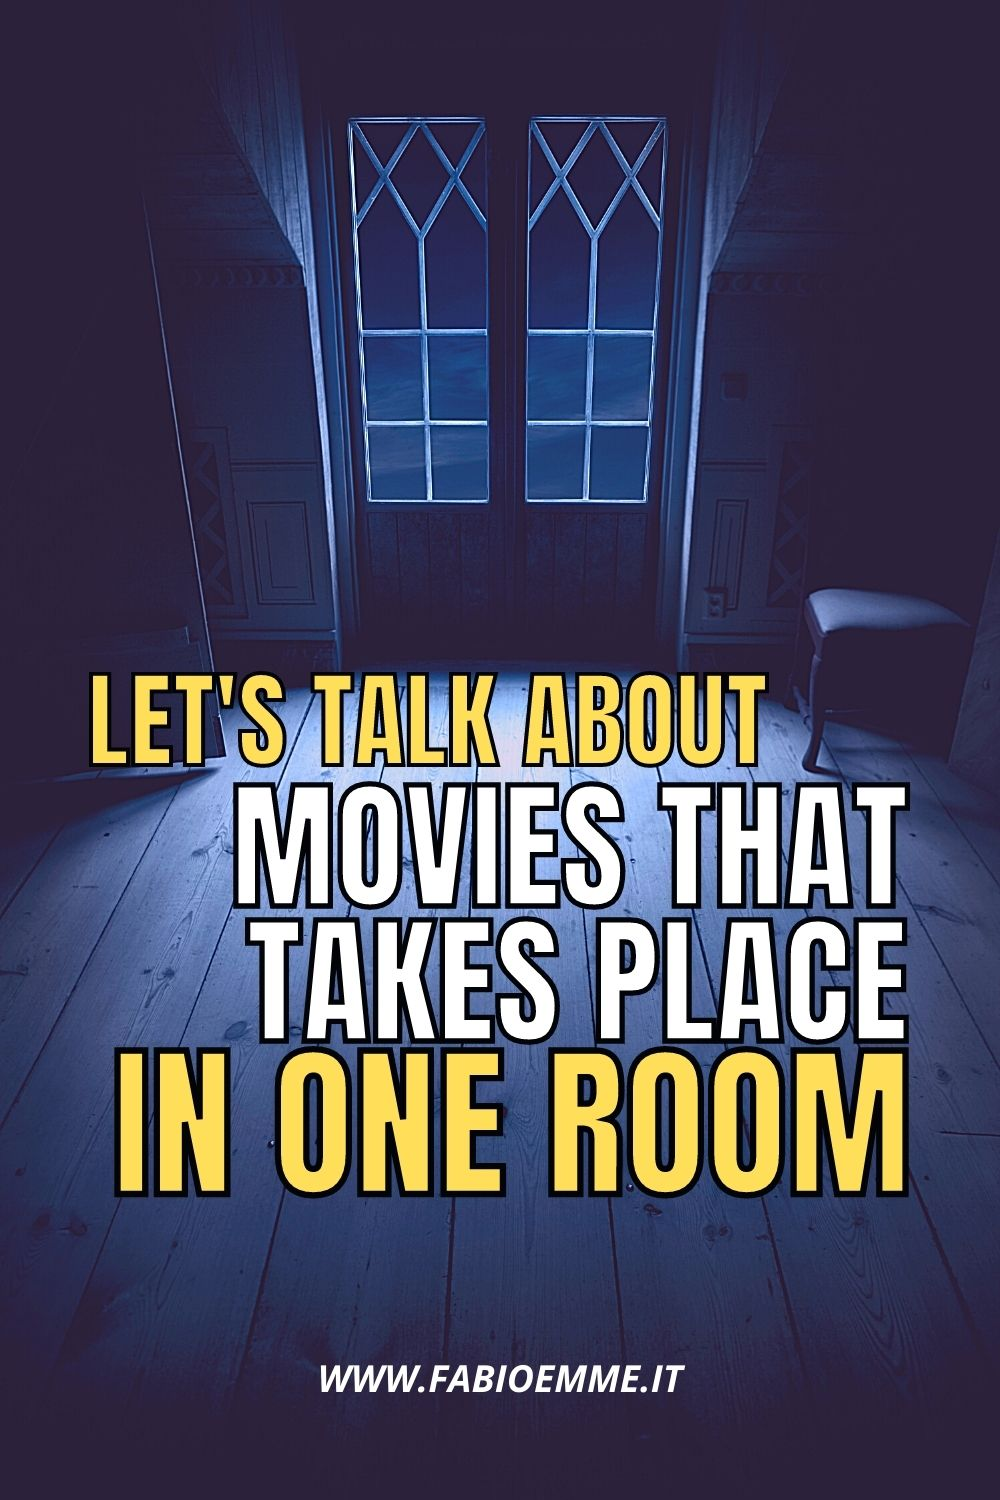 The whole world and a person's whole life can be a room. 3 Movies that take place in One Room that you may have missed. #MOVIES